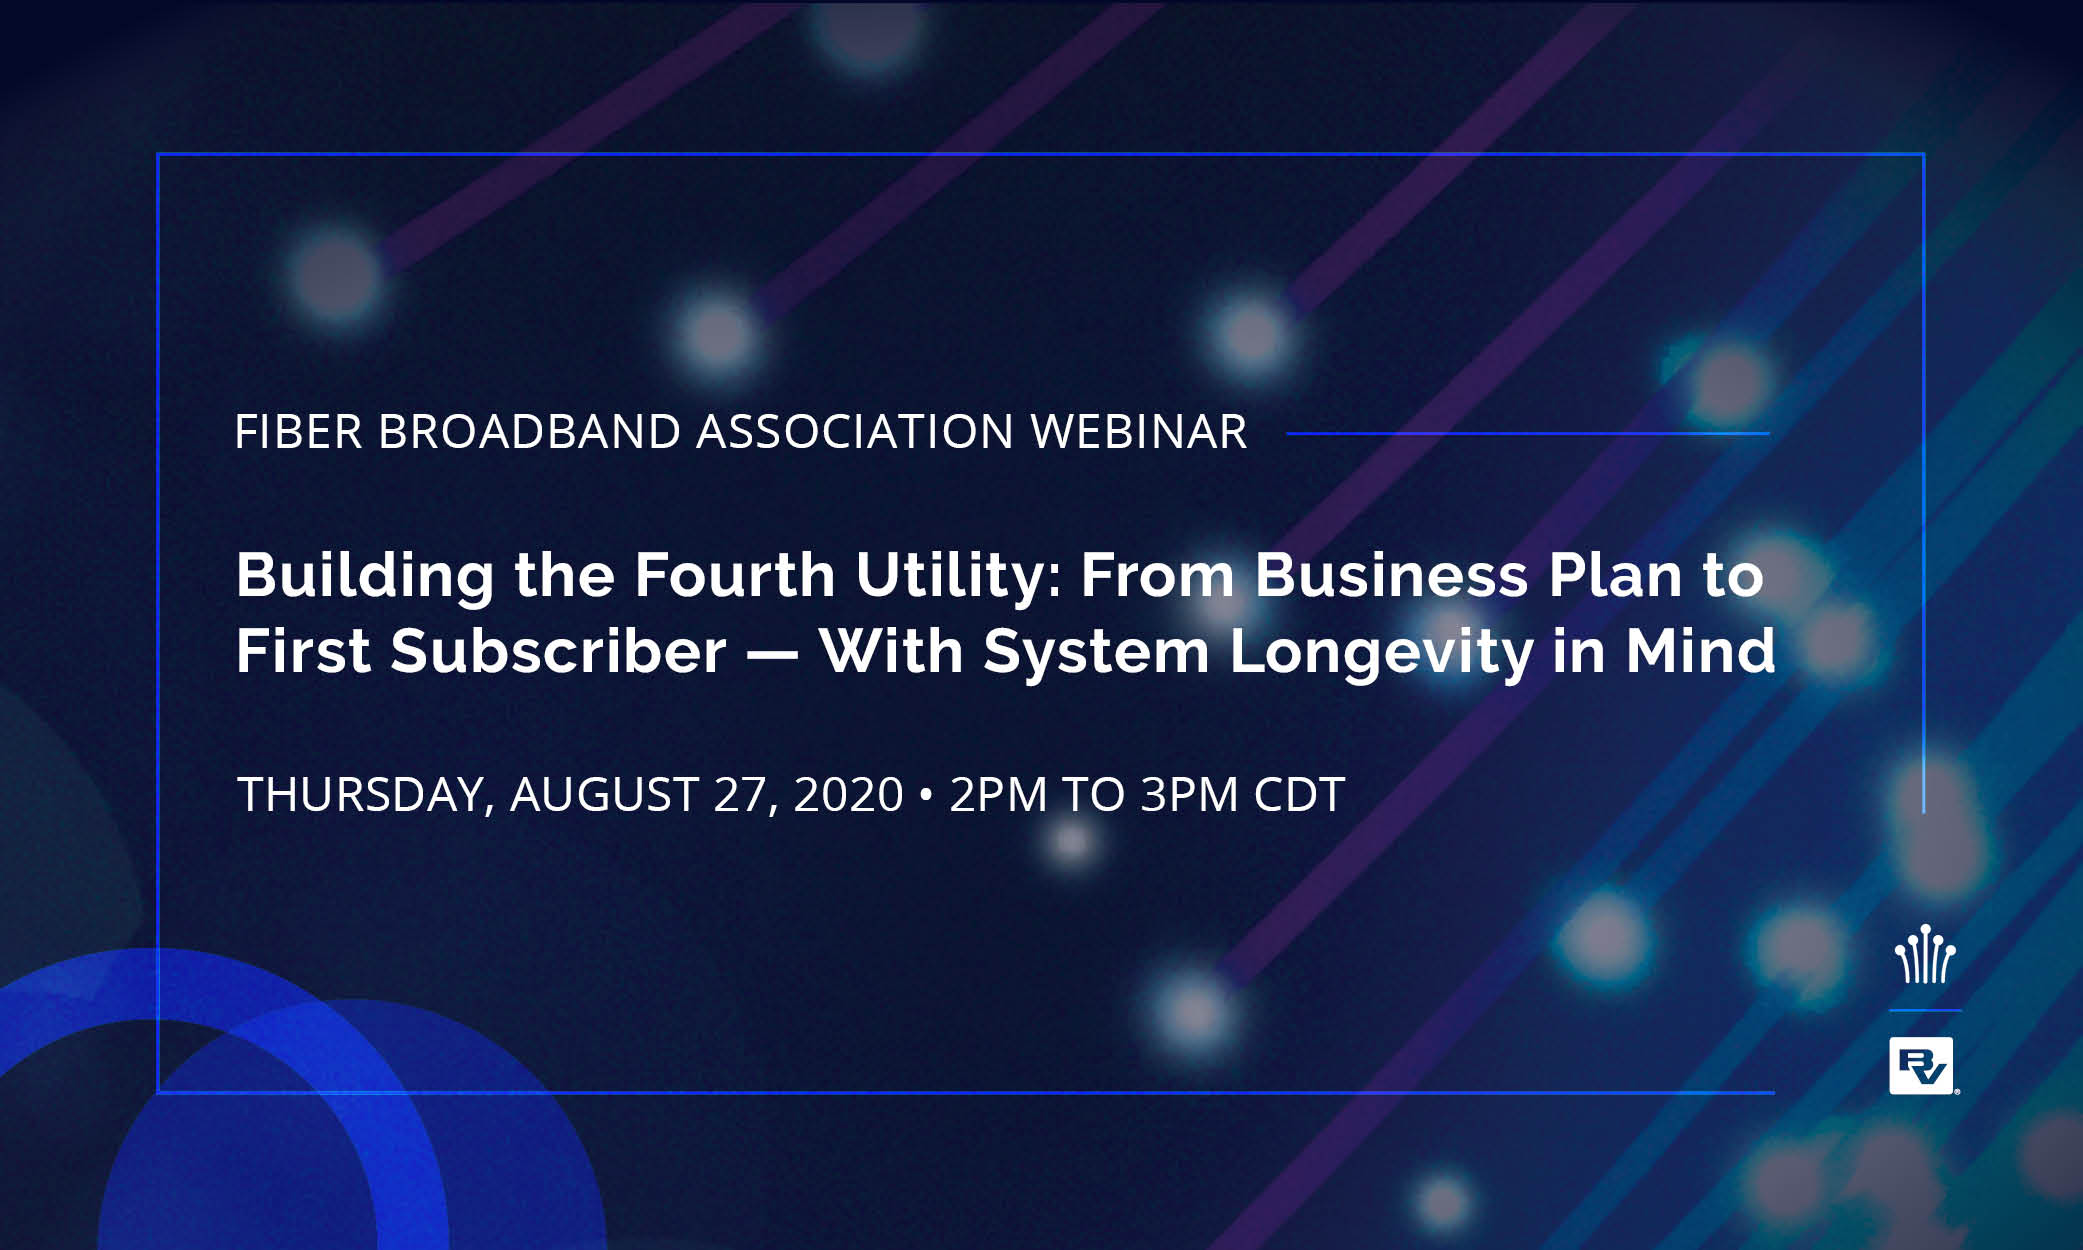 Building the Fourth Utility: From Business Plan to First Subscriber – With System Longevity in Mind